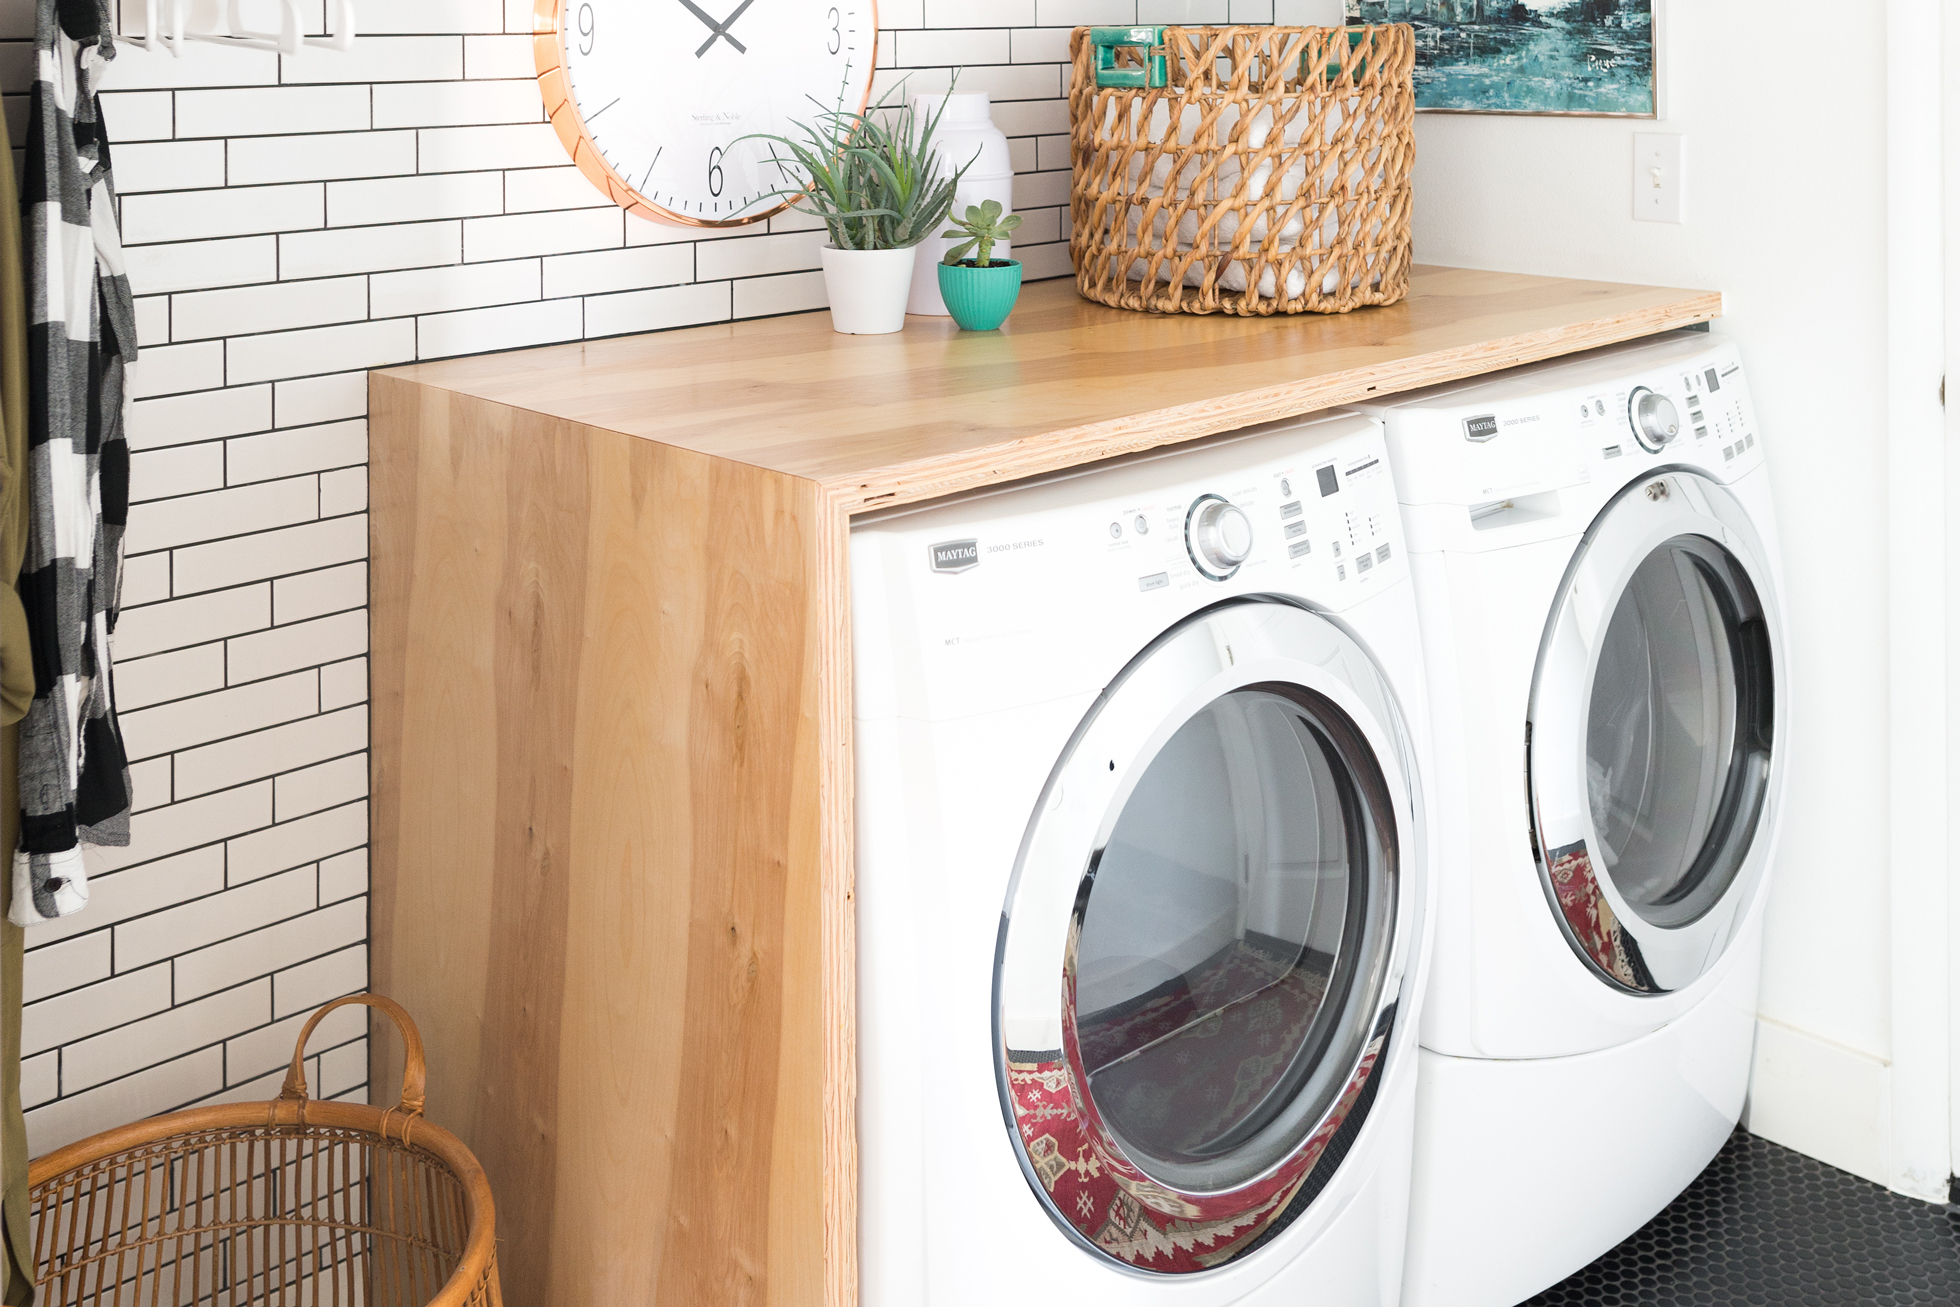 Laundry room with white subway tile and black tiled floor